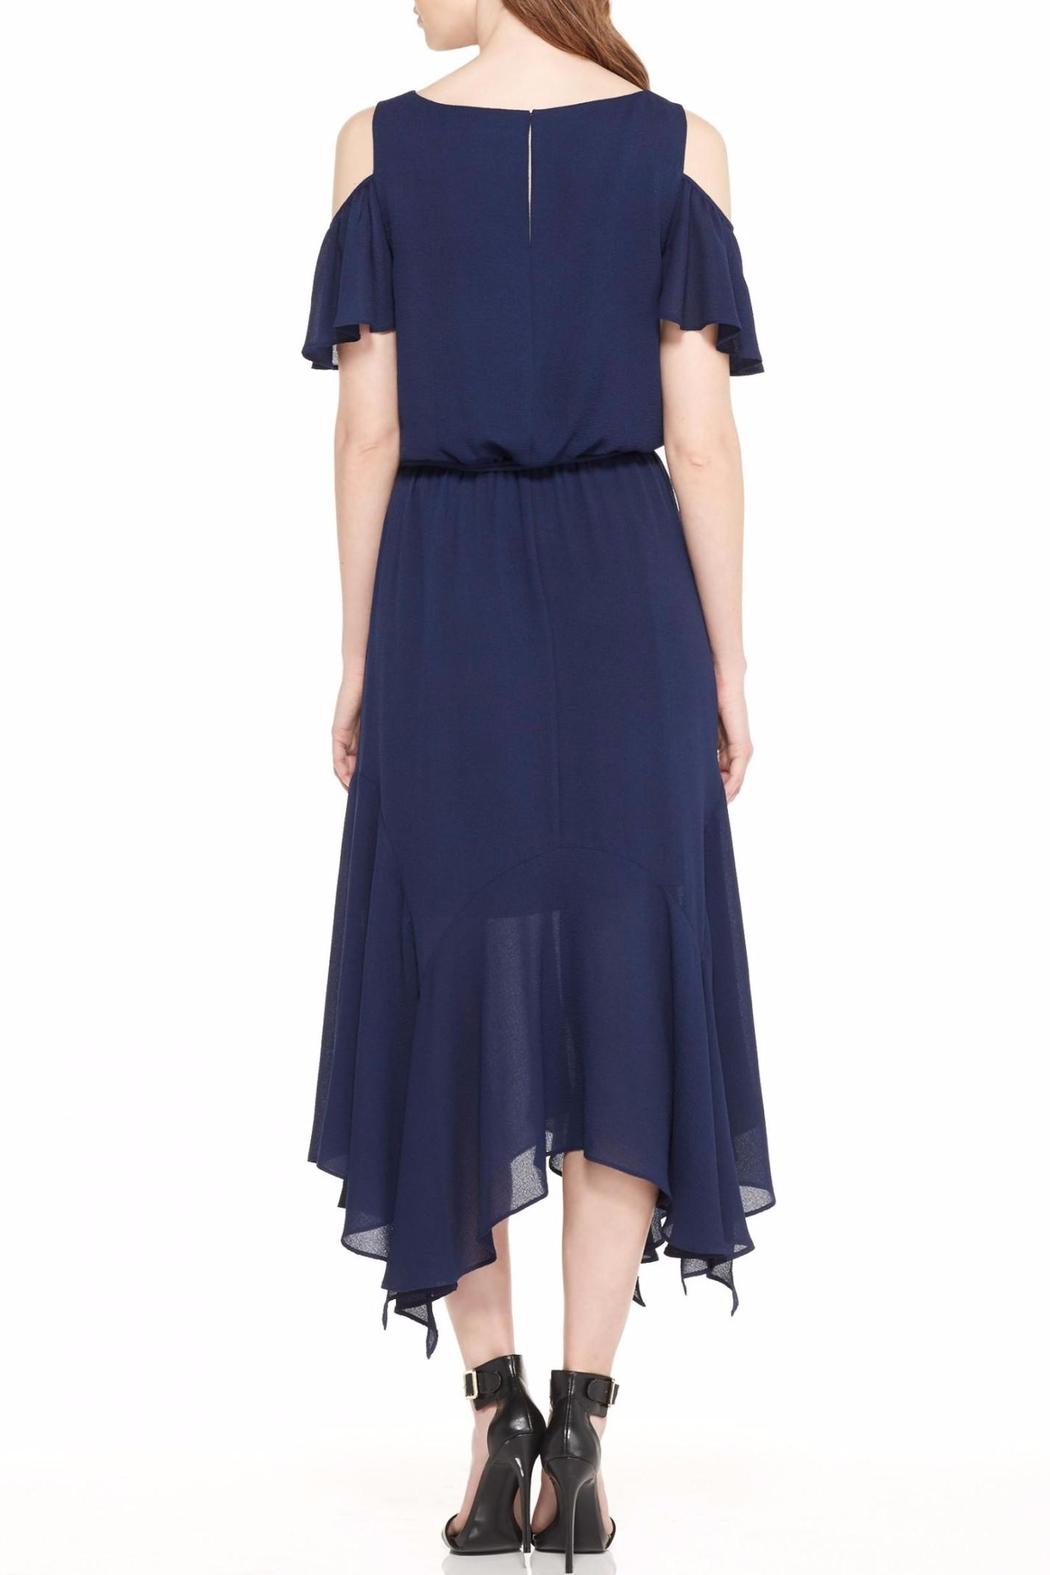 Maggy London Navy Cold Shoulder Dress - Front Full Image